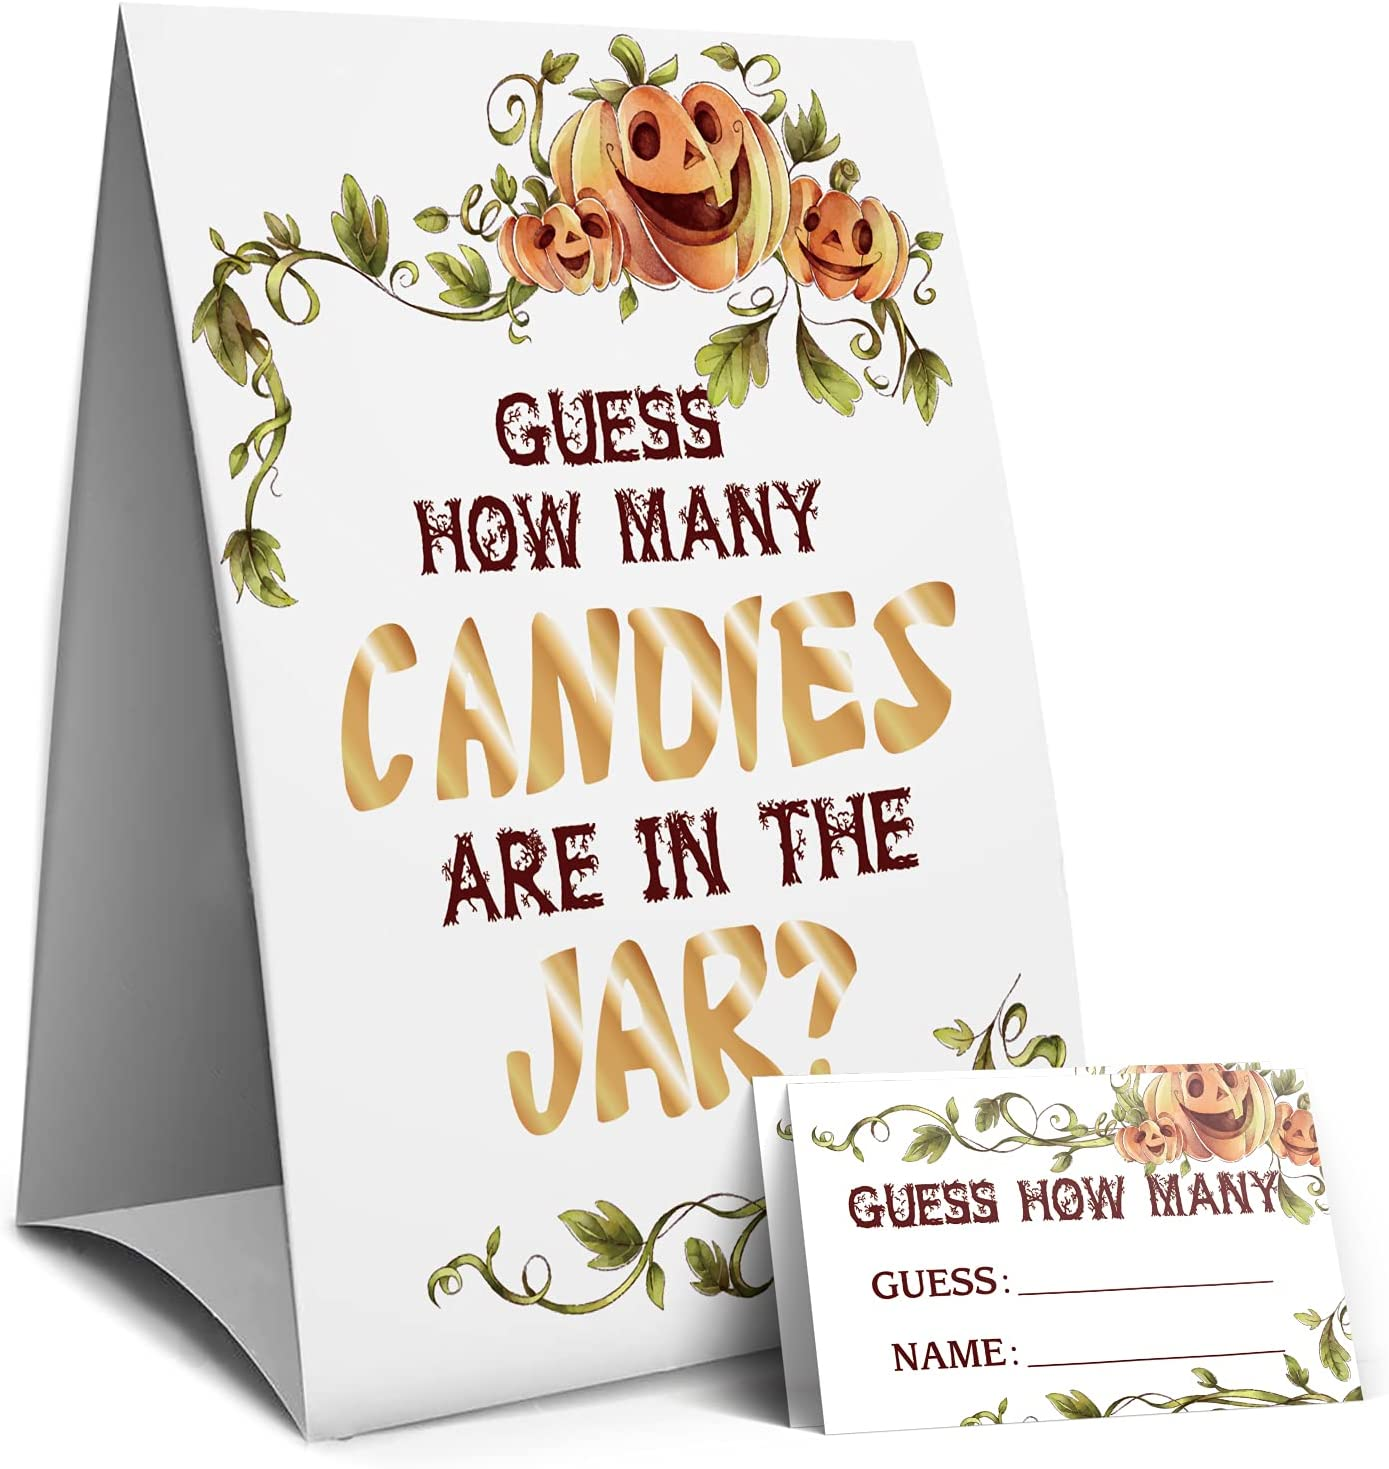 Pumpkin Guess How Many Candies Are In The Jar, Halloween Candies Guessing Game, Baby Shower Game Sign, Bridal Shower Game Sign, Birthday Party Games Sign -1 Sign and 50 Guessing Cards(16A)